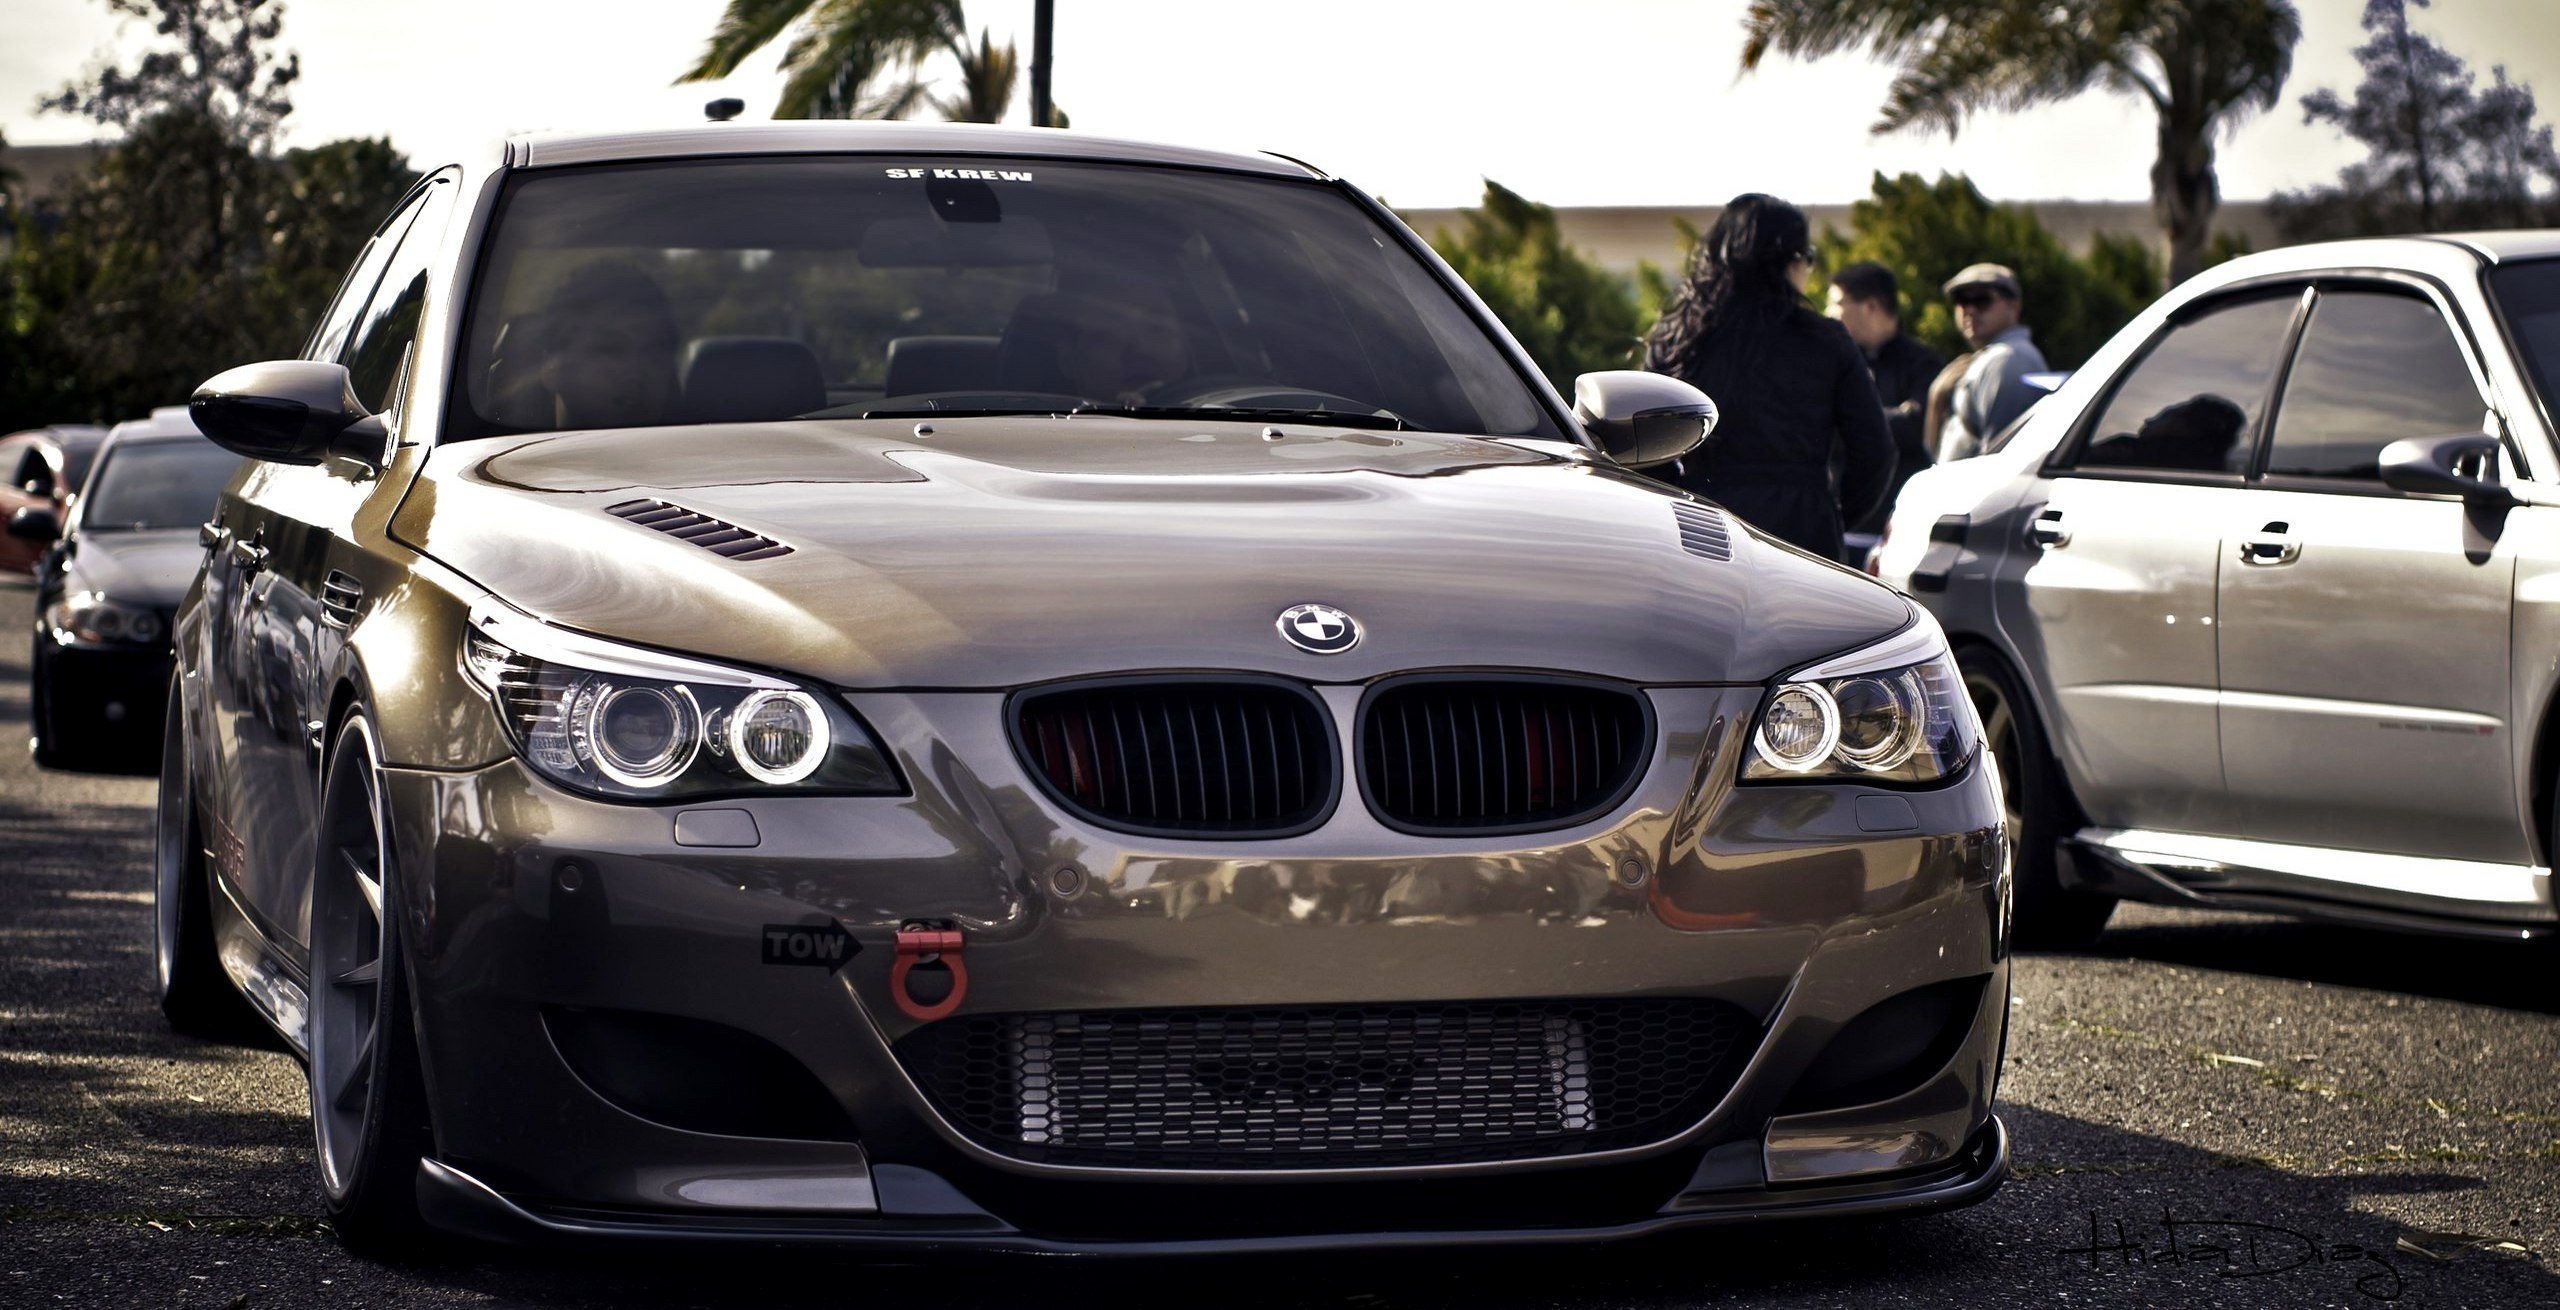 Bmw M5 E60 wallpaper 2560x1310 692074 WallpaperUP 2560x1310